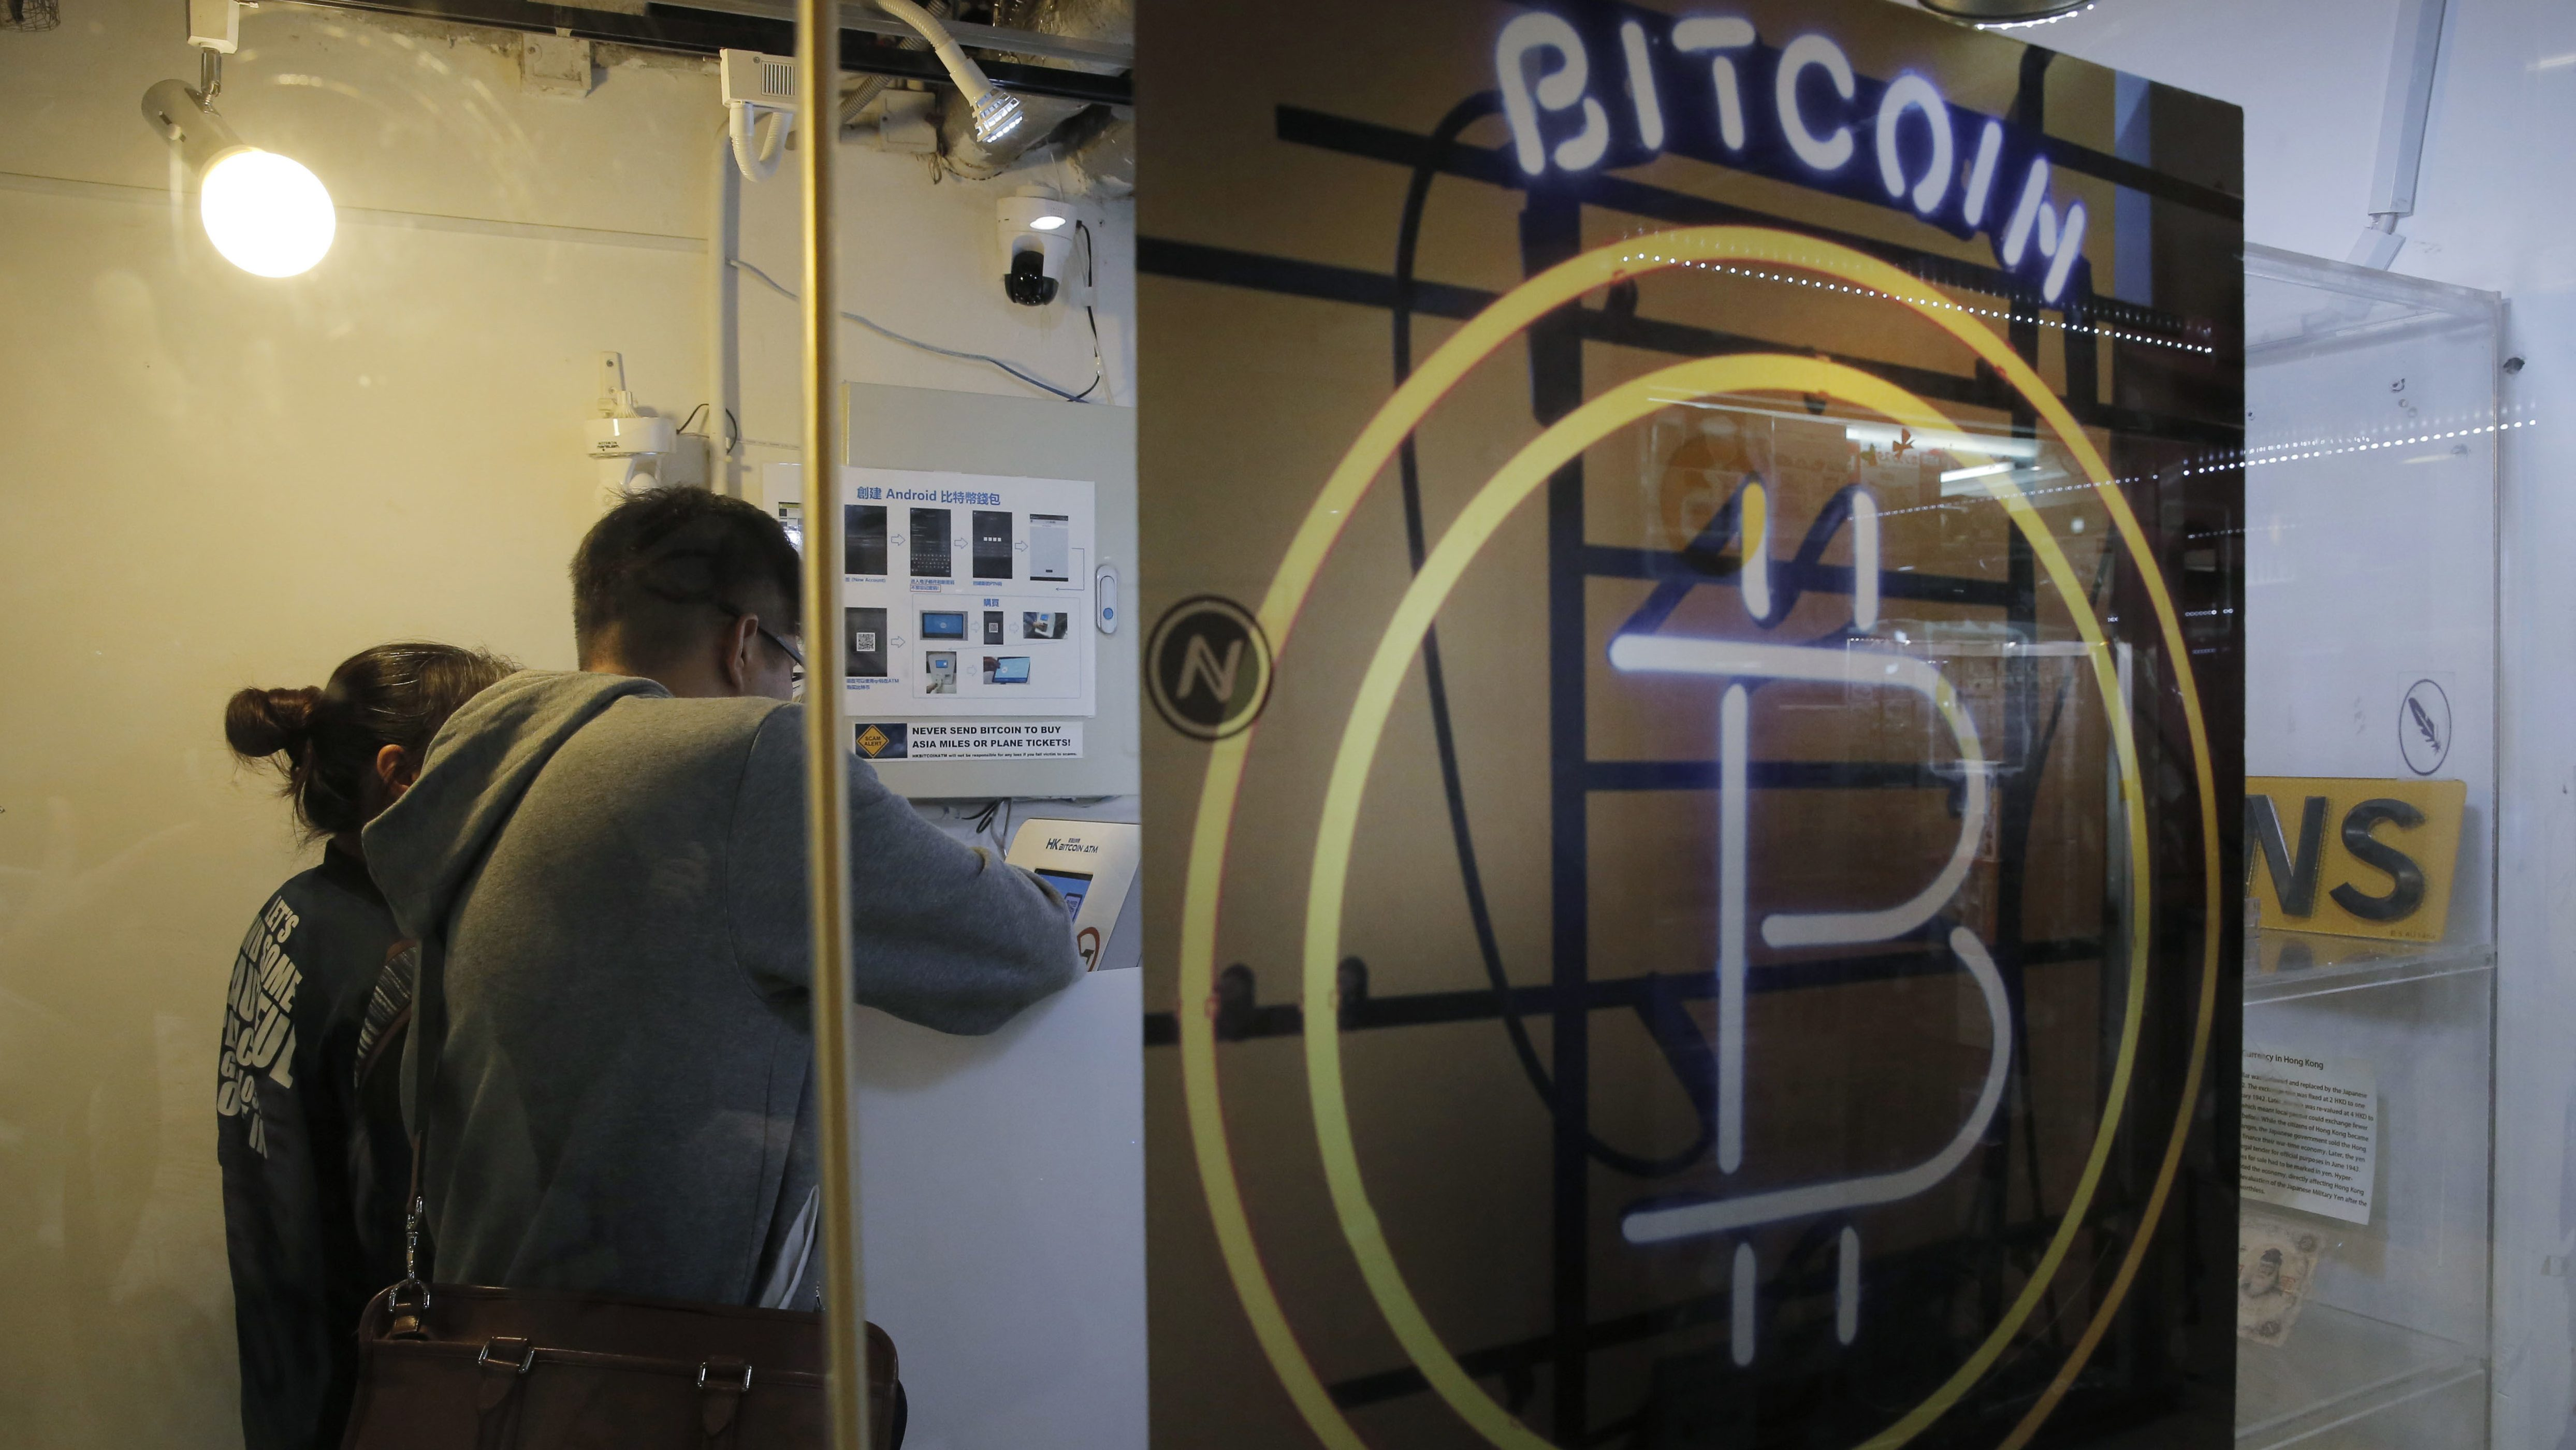 In this Friday, Dec. 8, 2017, photo, people use the Bitcoin ATM in Hong Kong. The launch of a U.S. futures contract for bitcoin on Sunday, Dec. 10, 2017, underscores the virtual currency's increasing mainstream acceptance, including in many parts of Asia, where it already has a wide following among speculators and investors.